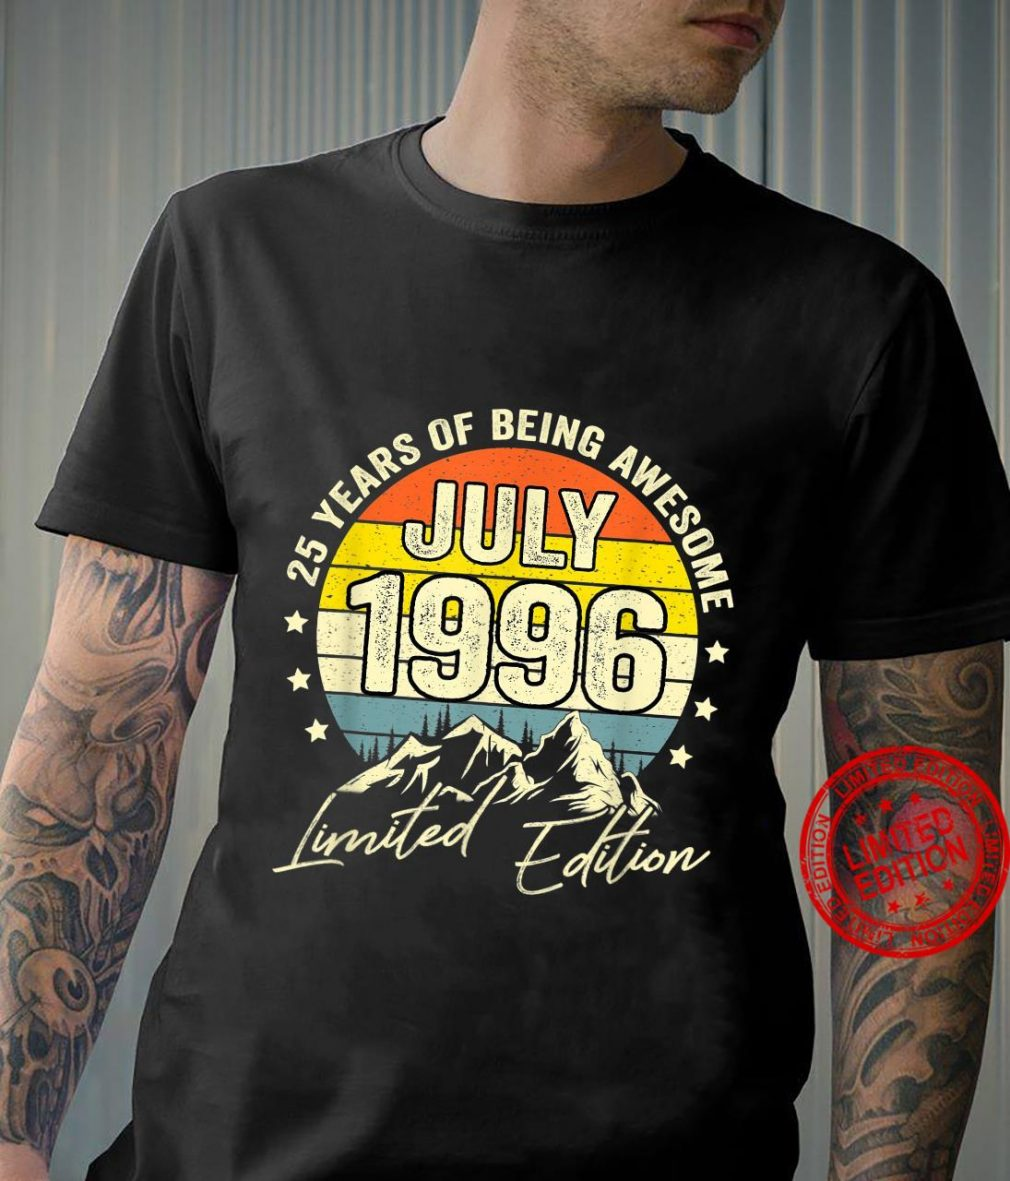 25Year Old Vintage July 1996 Limited Edition 25Th Birthday Shirt